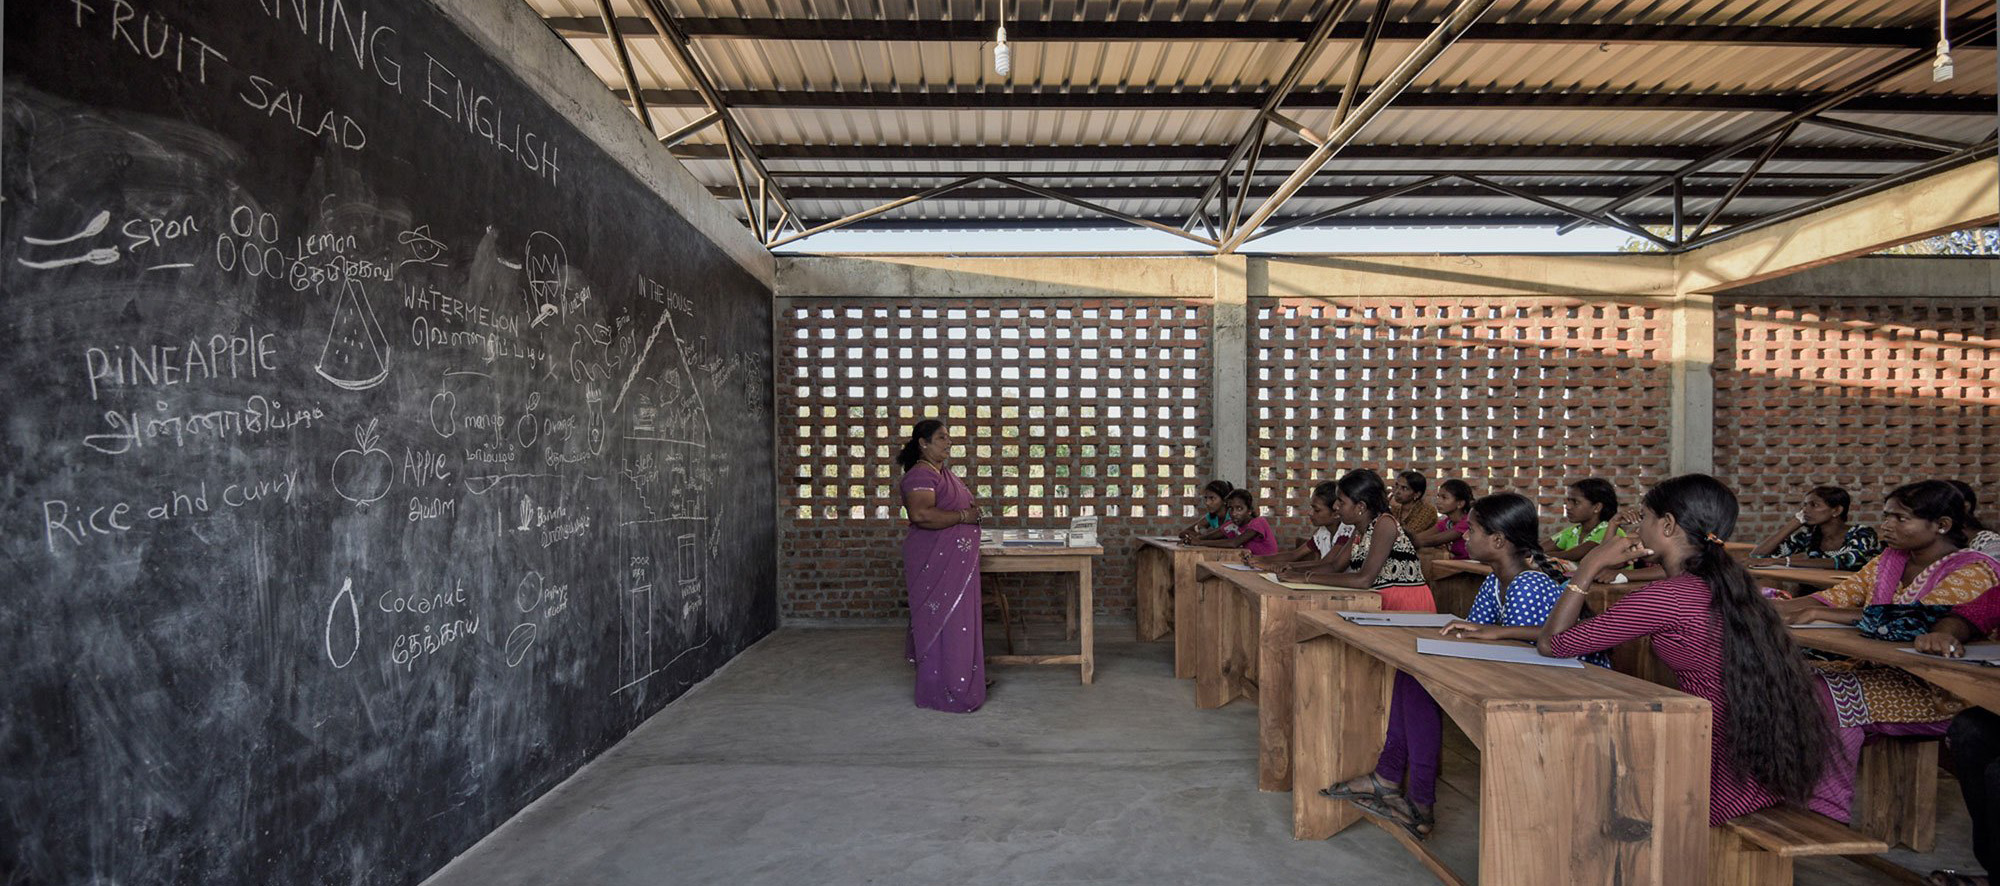 Lanka Learning Center by feat.collective. Photography © feat.collective